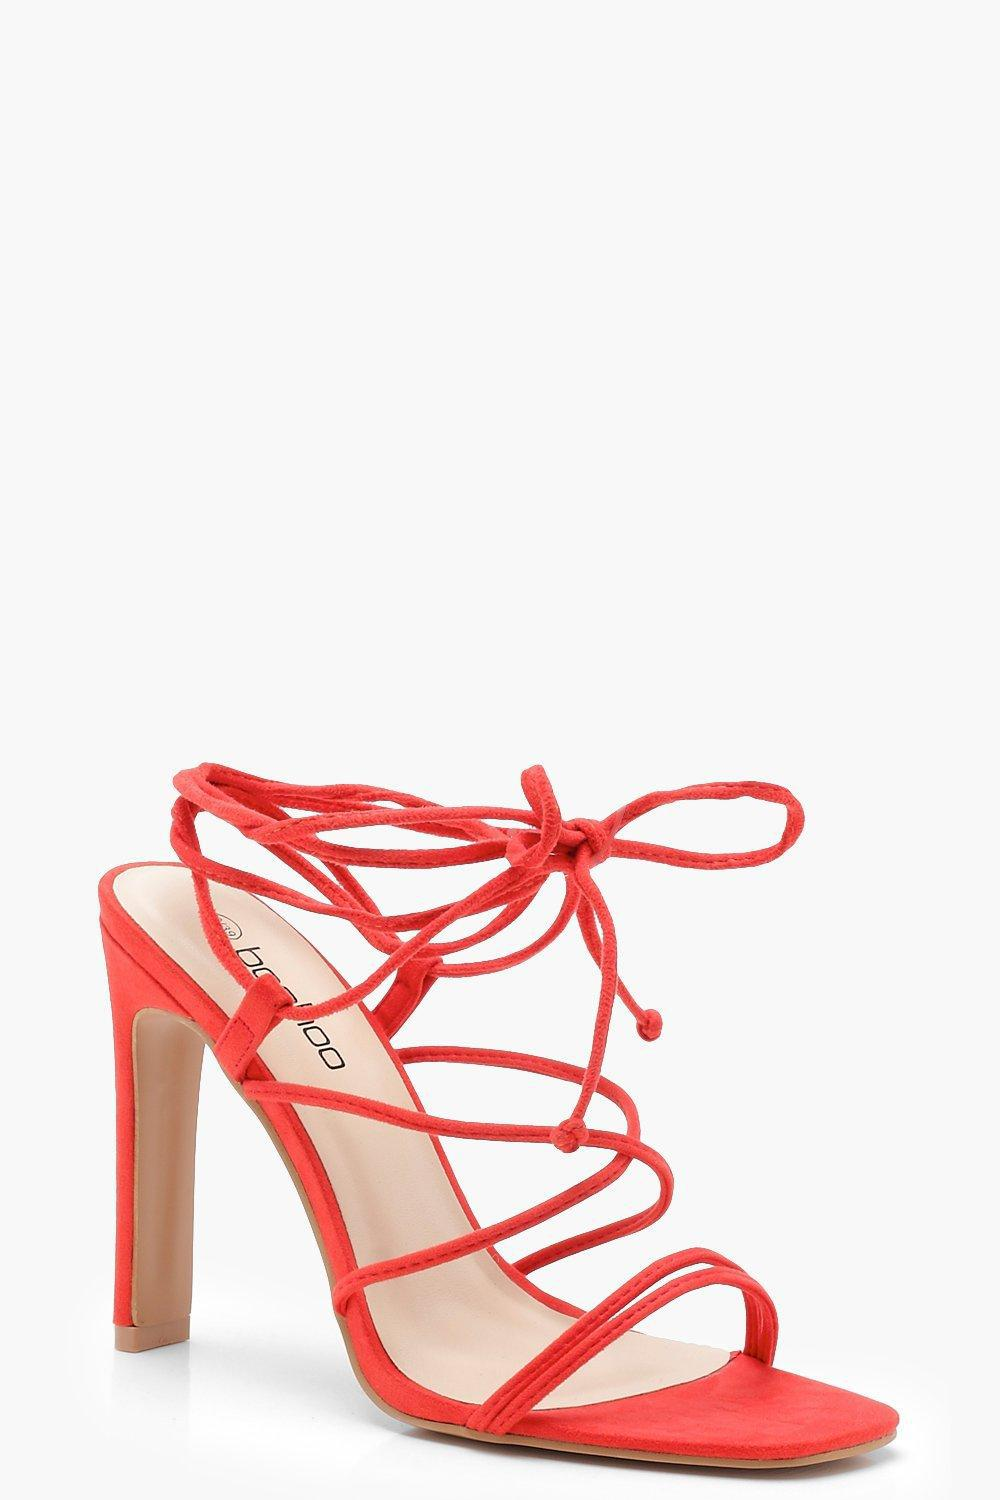 91901f91469 Boohoo Strappy Wrap Heel Sandals in Red - Lyst